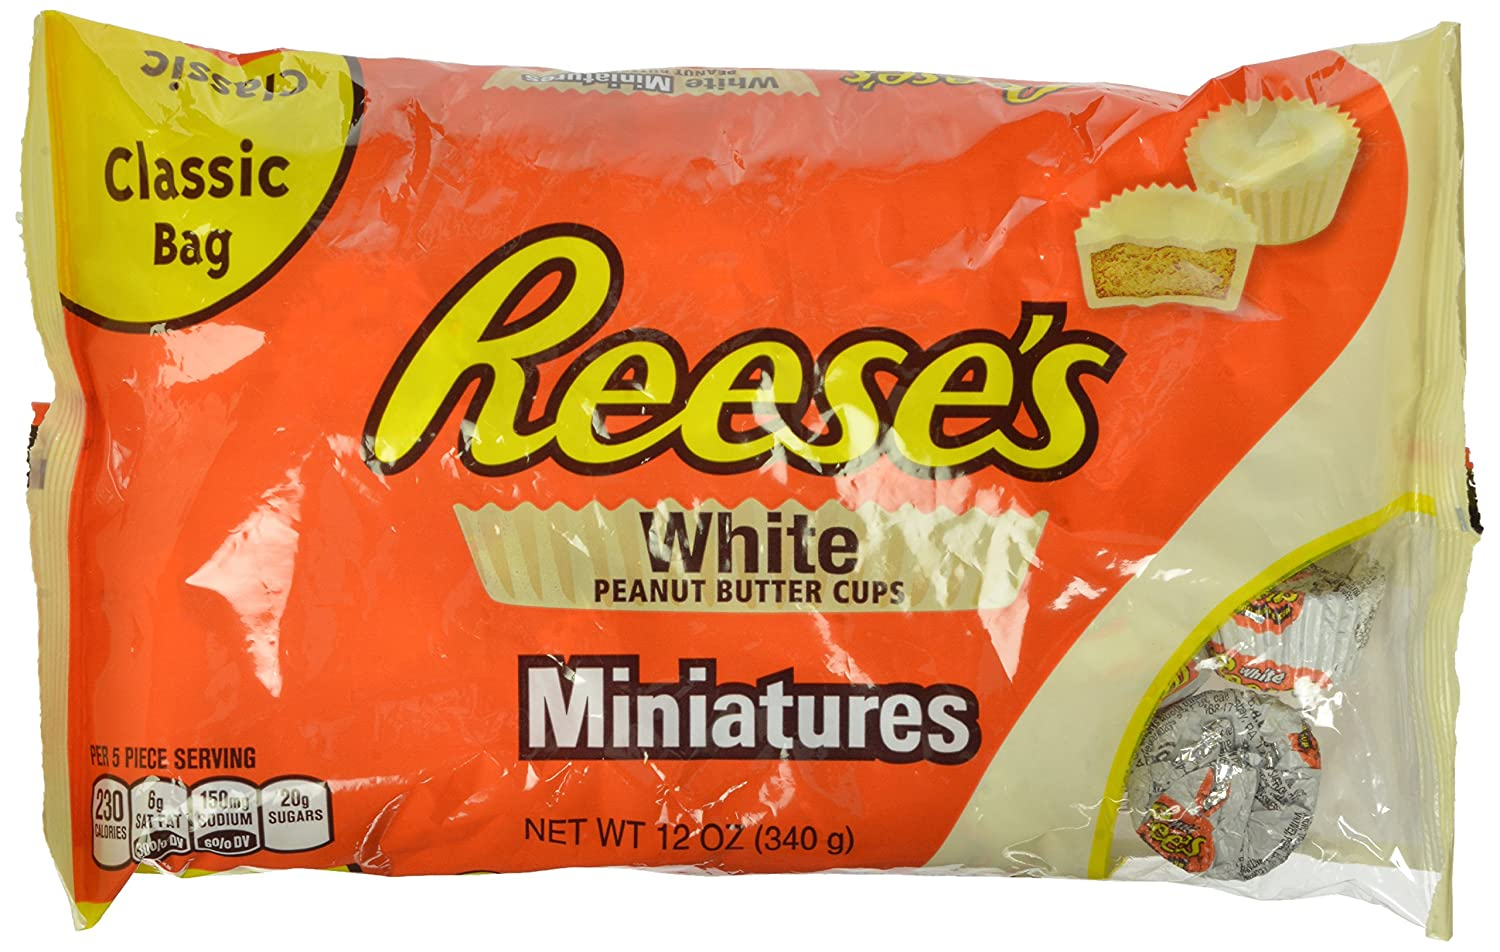 Amazon.com : REESE'S White Peanut Butter Cups Miniatures, 12 Ounce ...